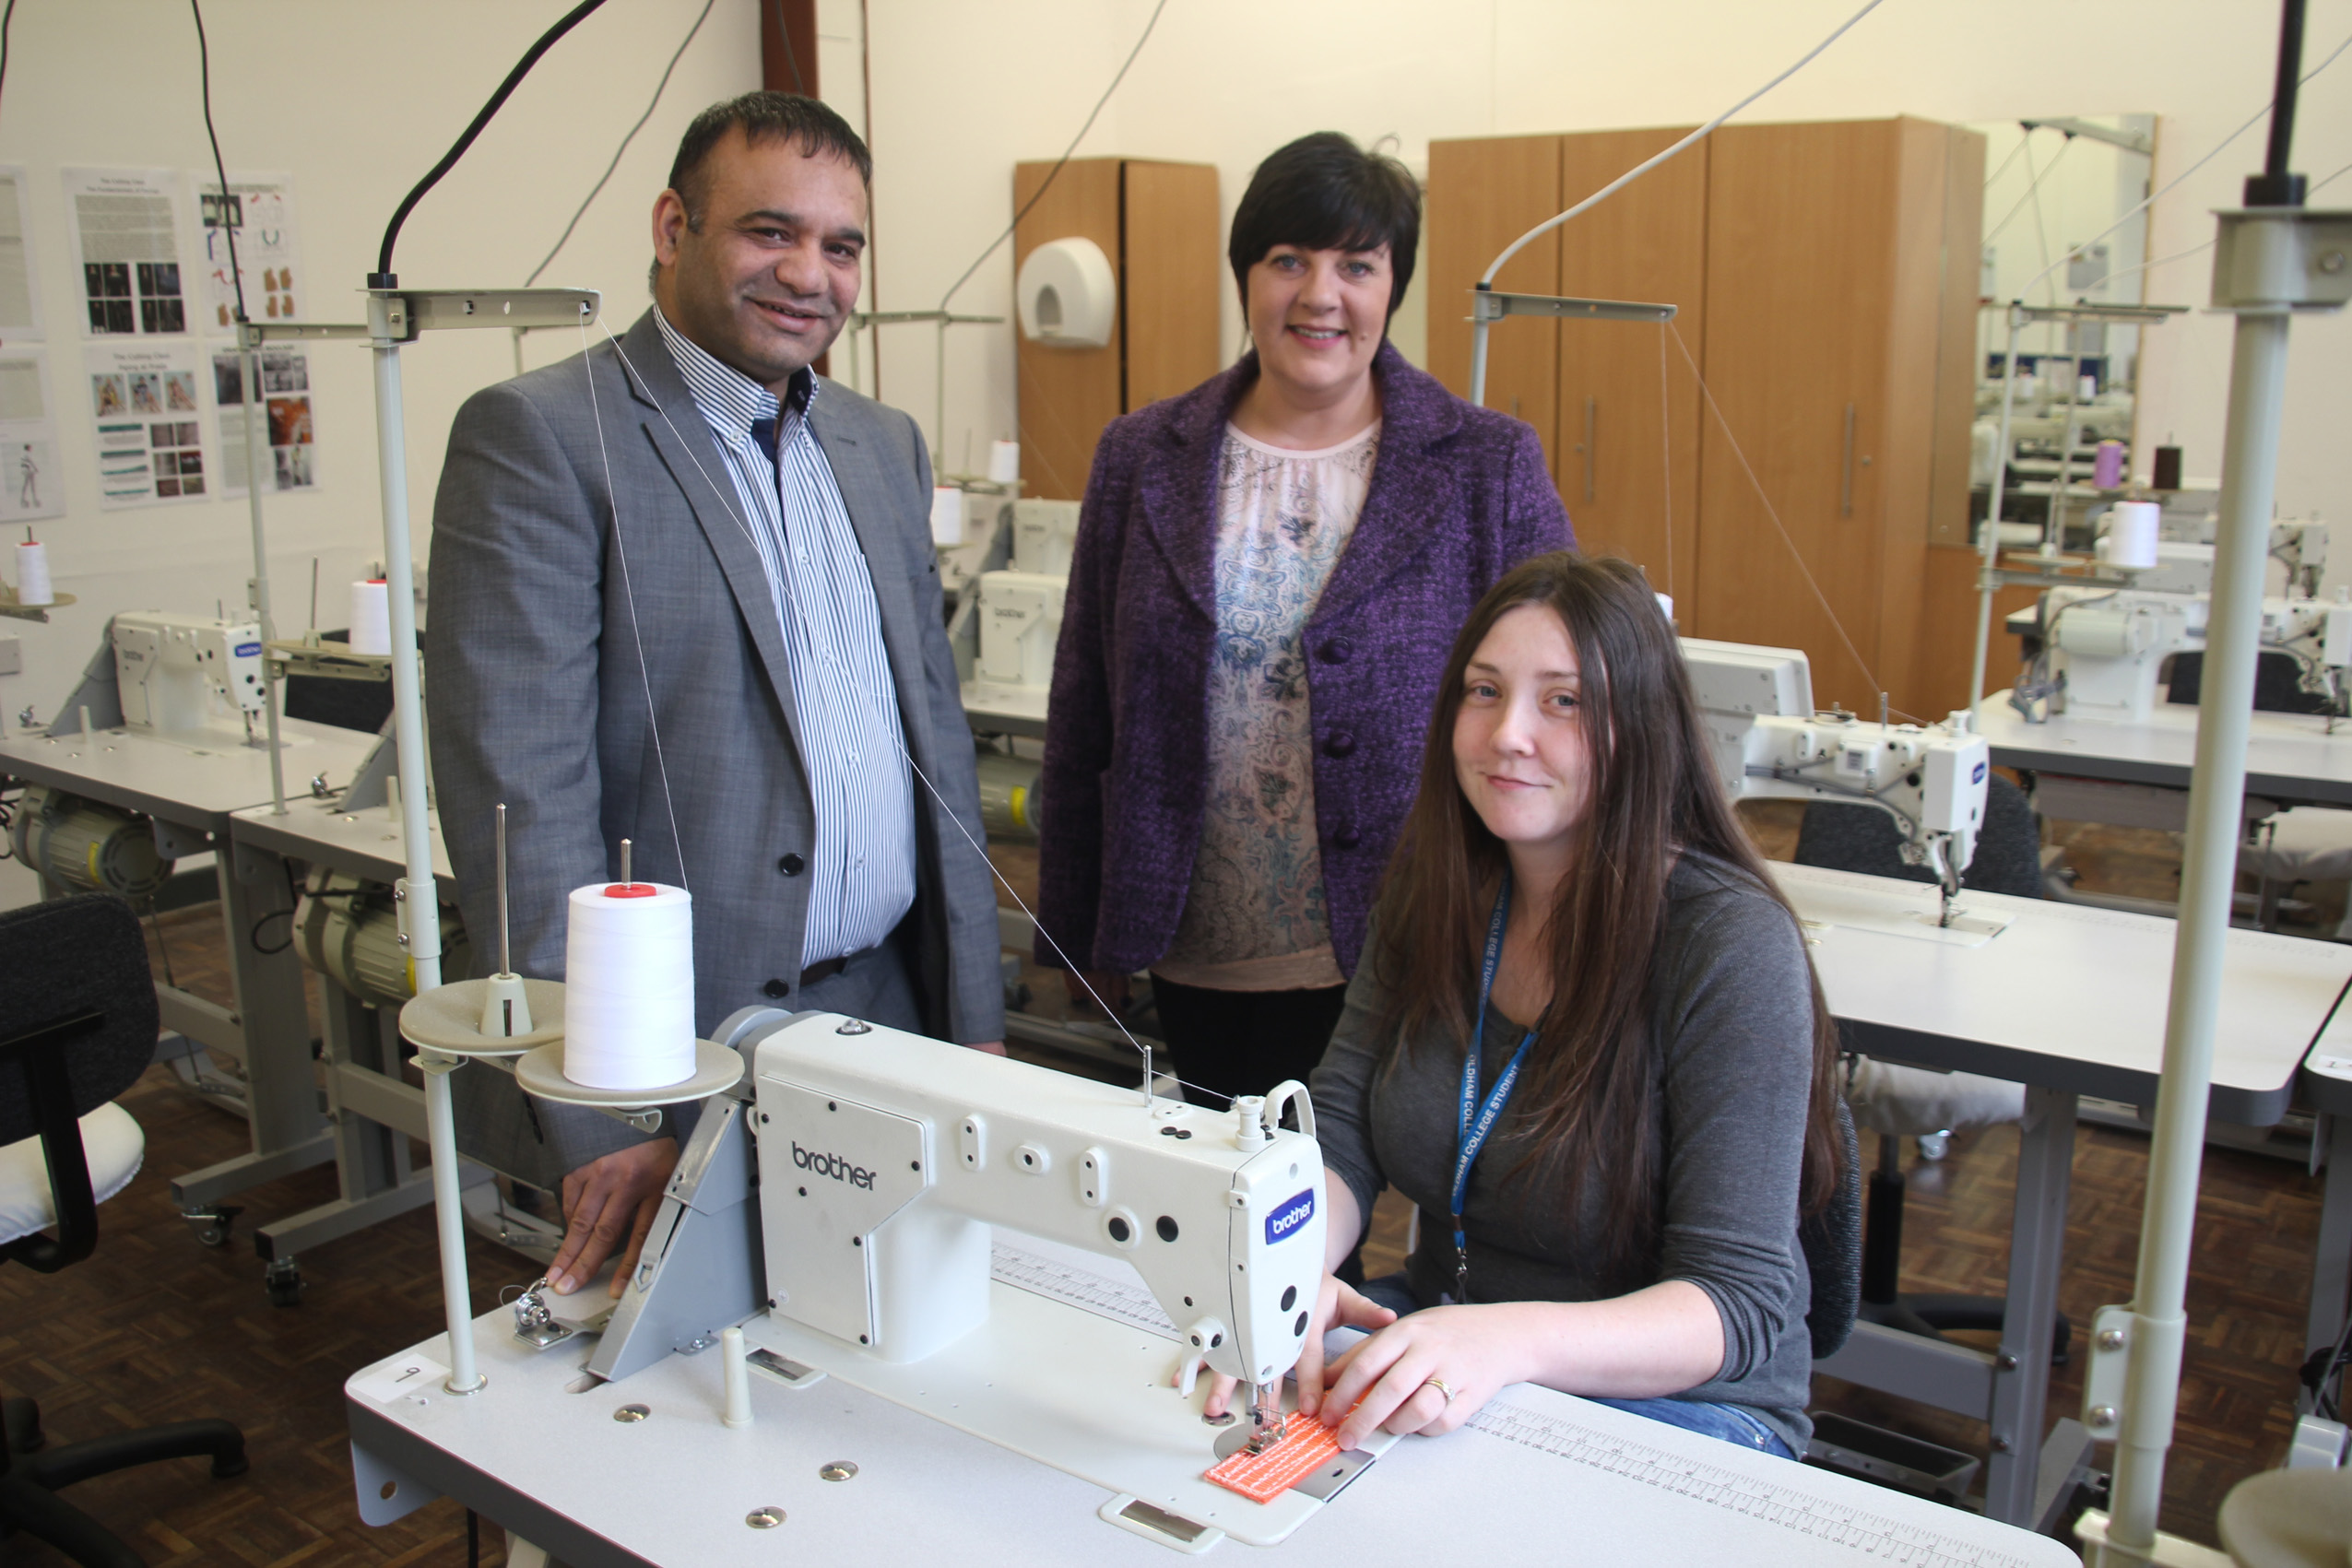 Sewing Academy student Sinead Ingham (pictured right) with Beverley Whittaker (course leader) and Councillor Shoab Akhtar, Oldham Council's Cabinet Member for Education and Skills.